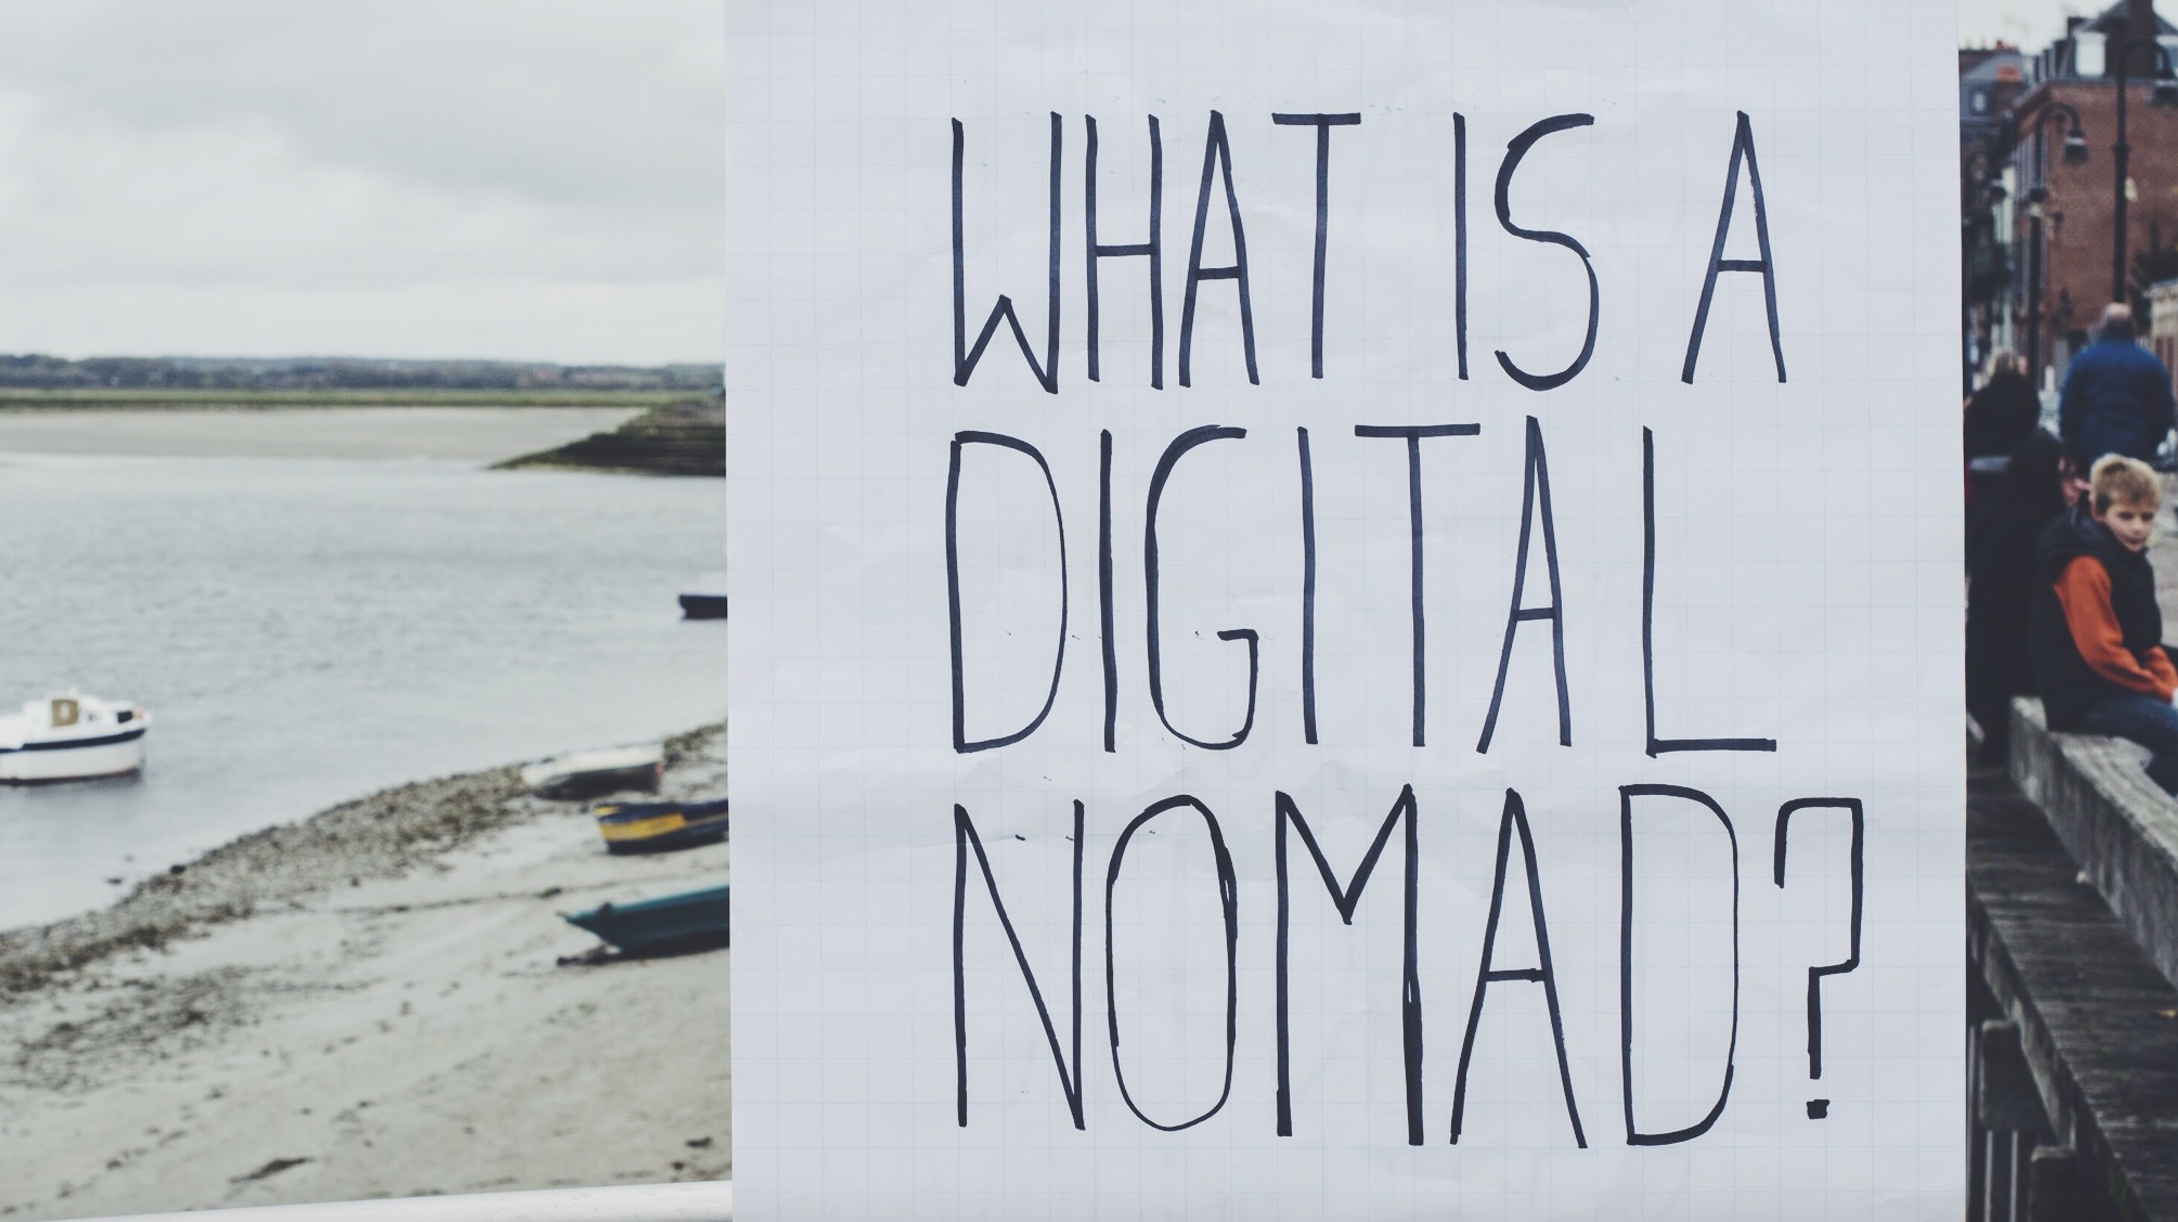 What-is-a-digital-nomad-photo-by-Everhooder